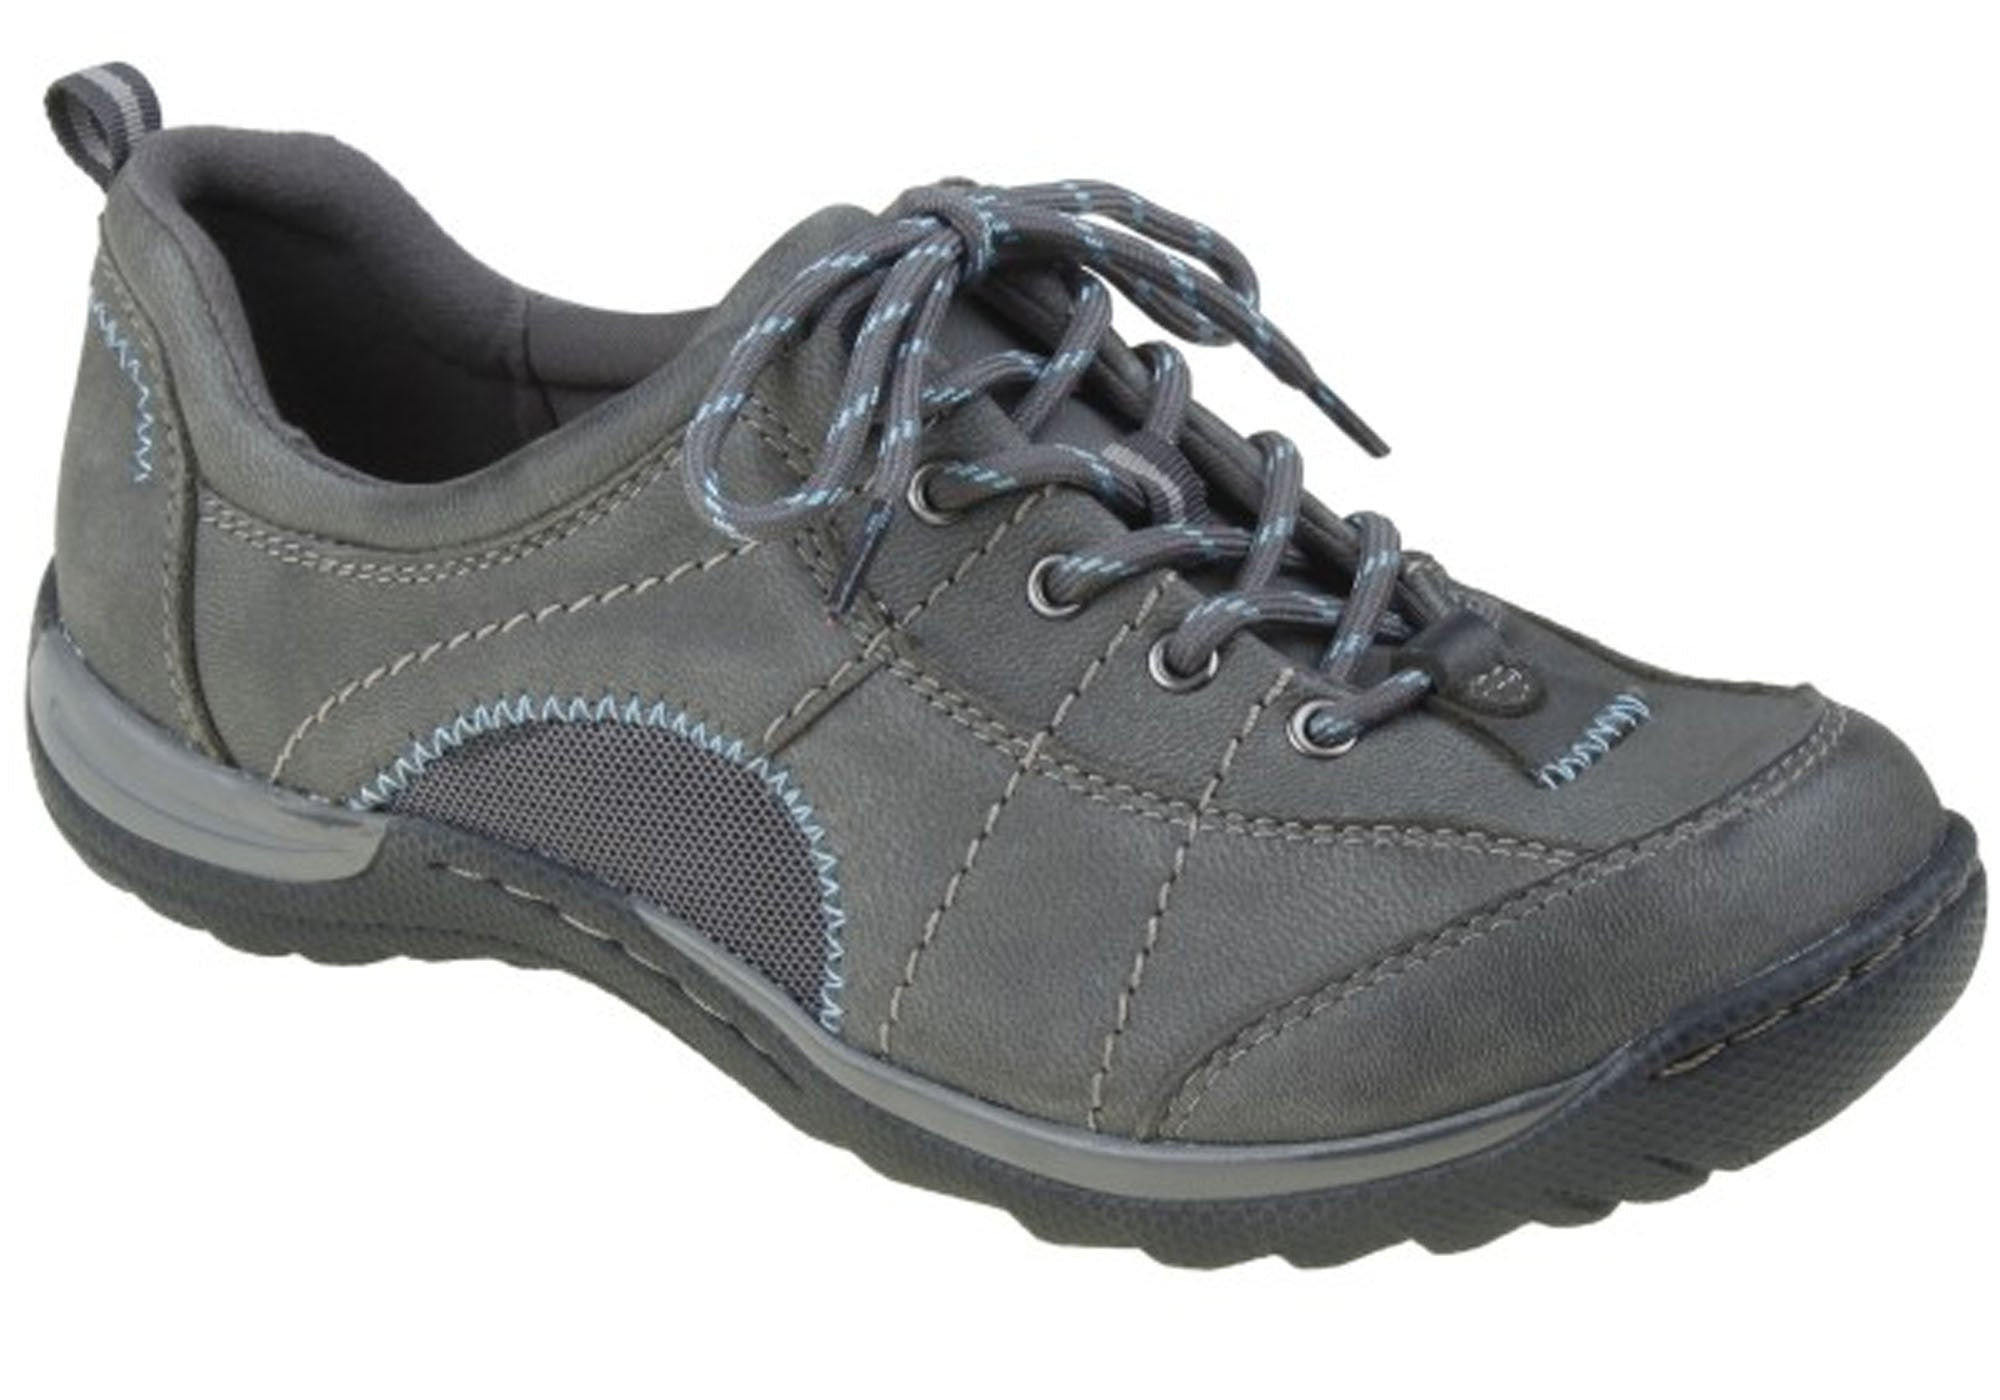 Women S Slip On Walking Shoes With Arch Support